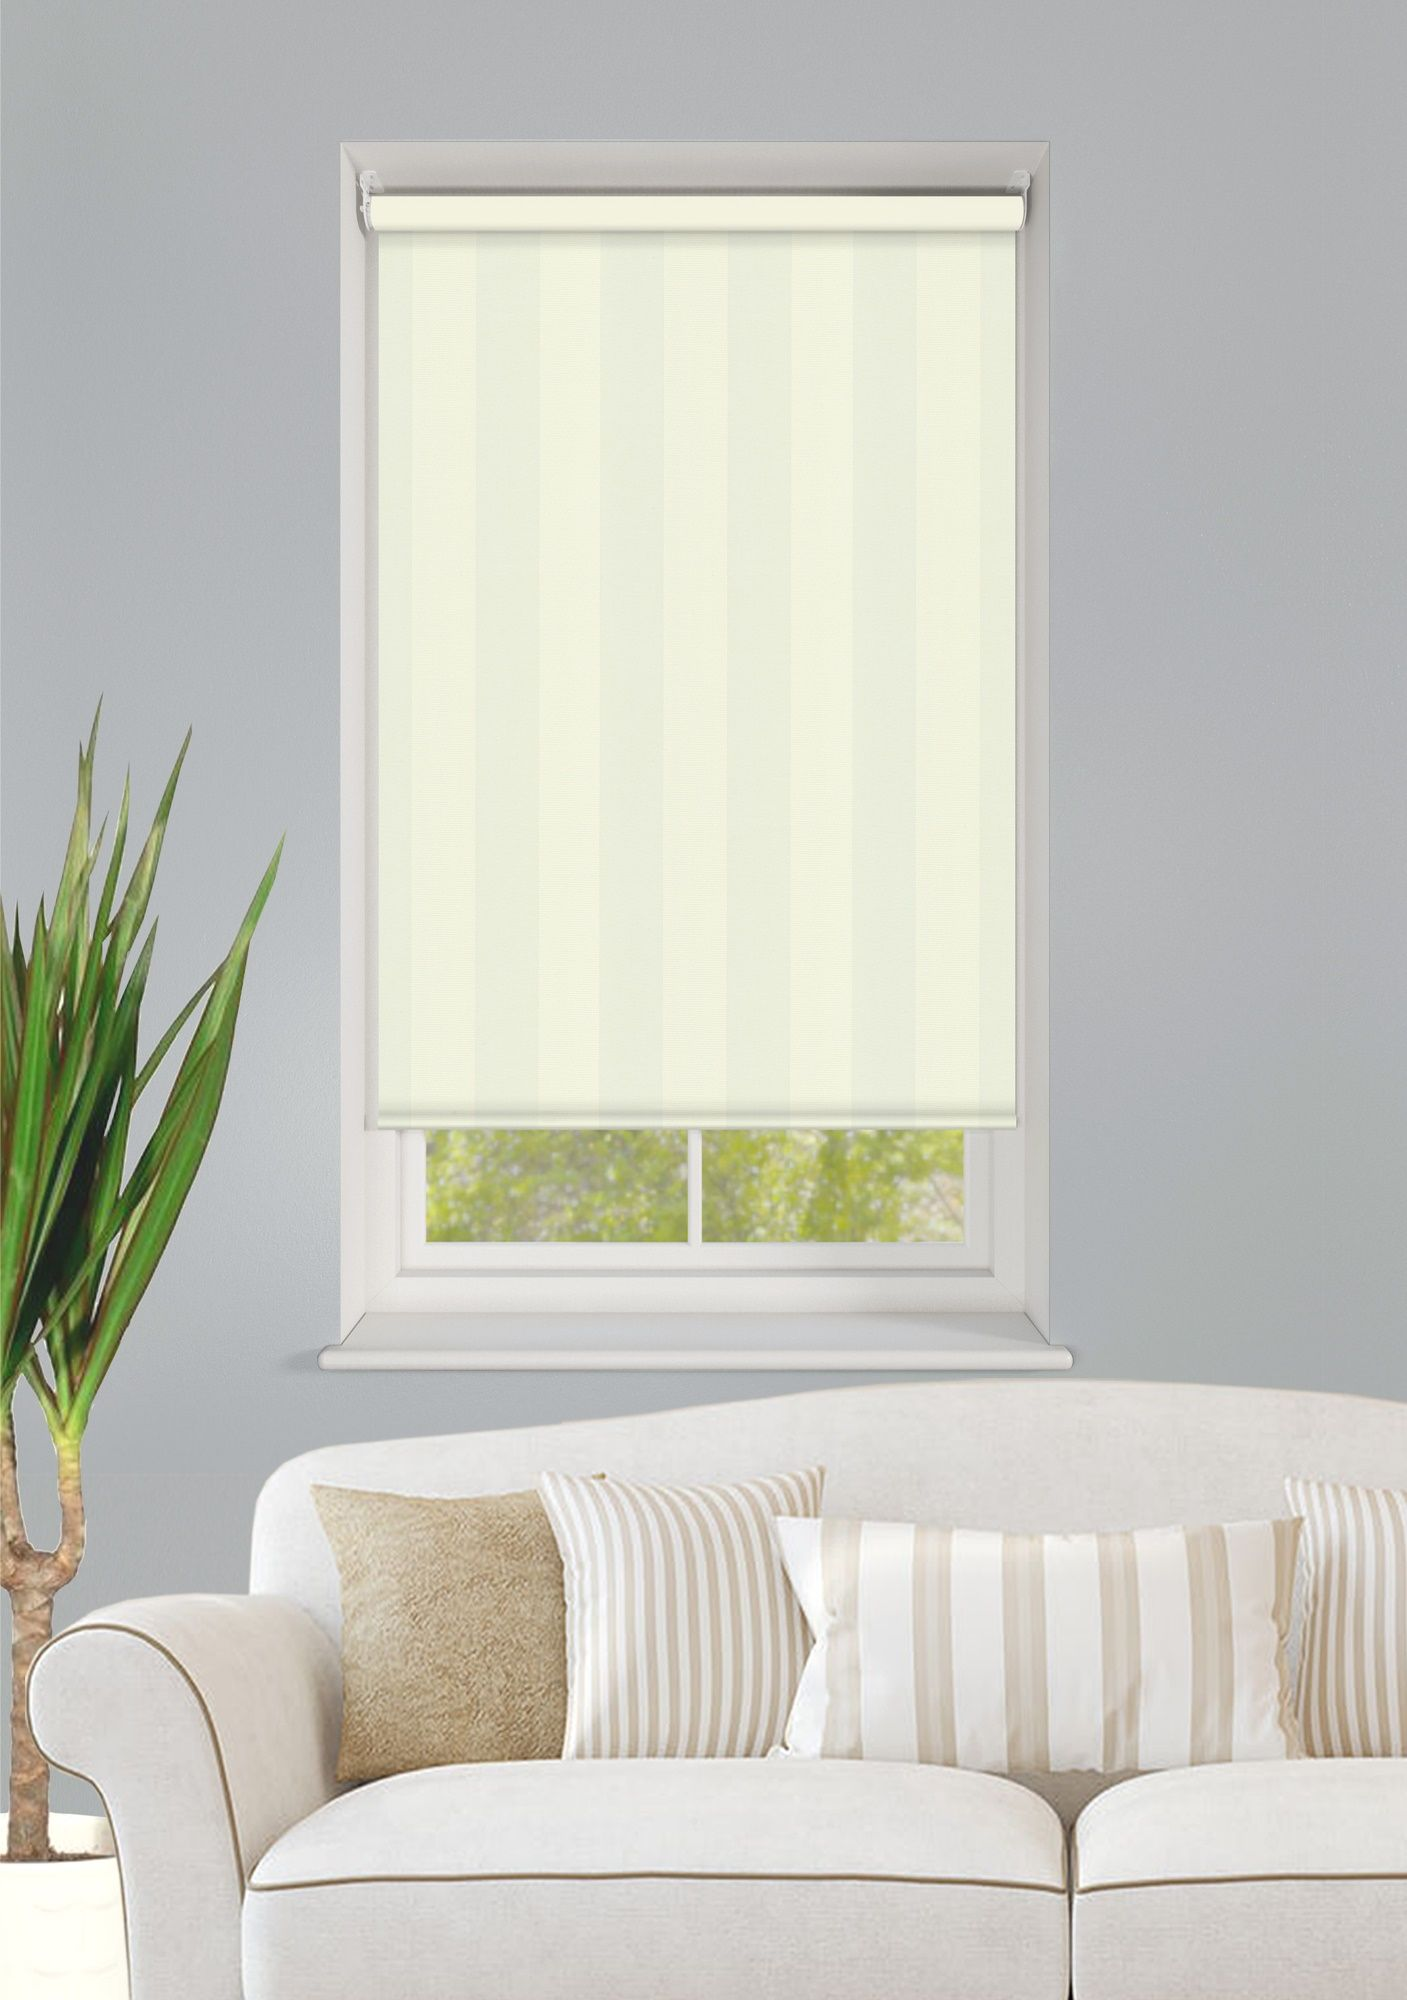 bound isla electric roller blind at order electric blinds online - Order Blinds Online